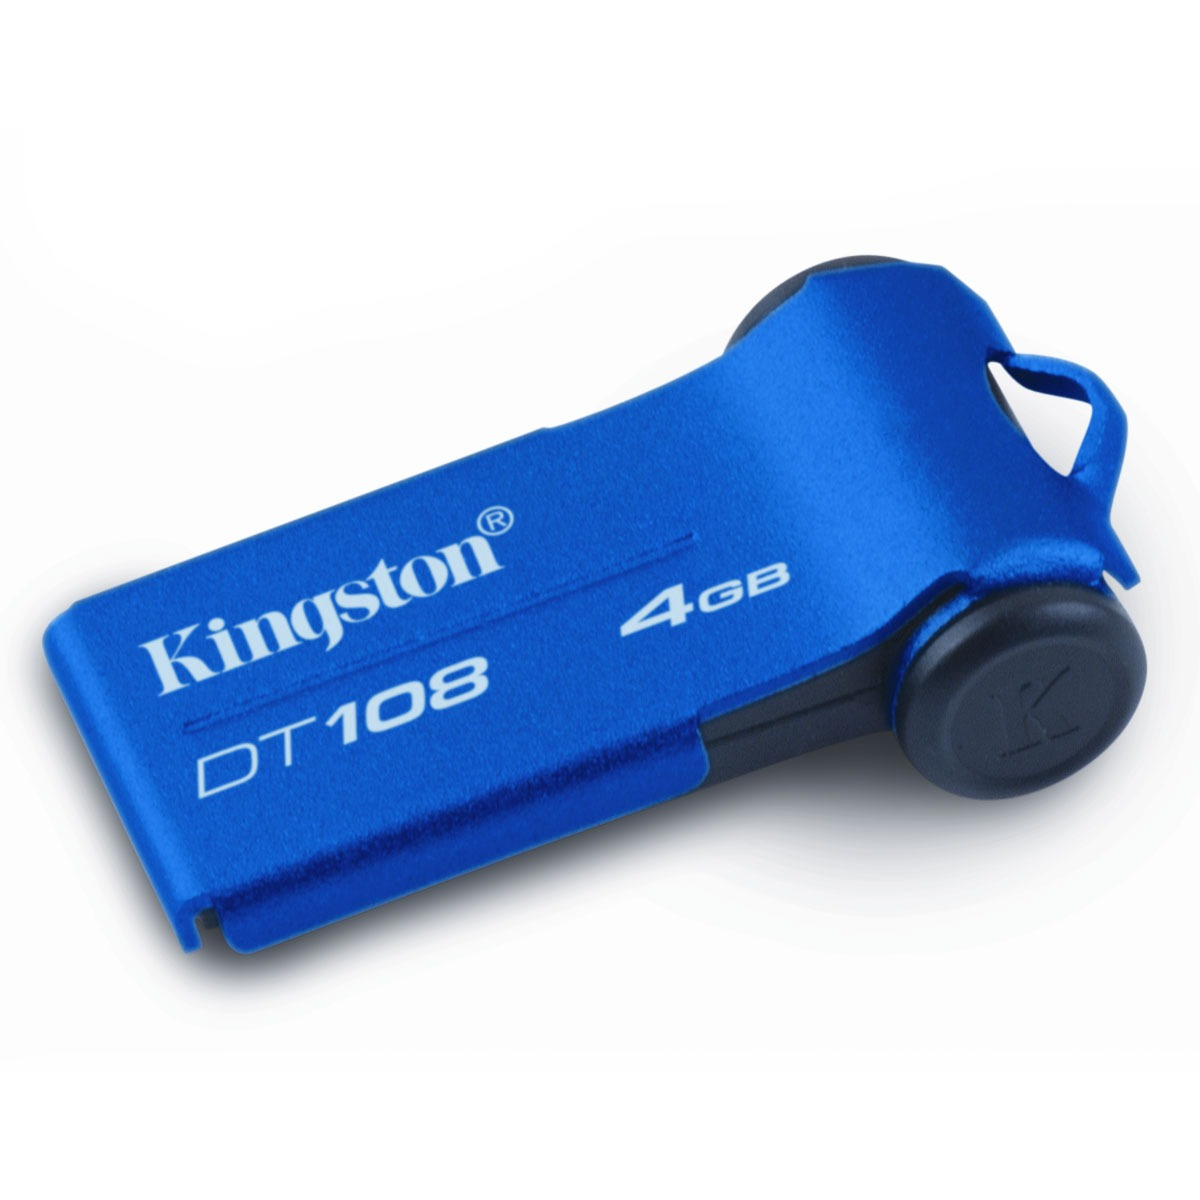 Clé USB Kingston DataTraveler 108 4 Go Kingston DataTraveler 108 4 Go - USB 2.0 (garantie constructeur 5 ans)